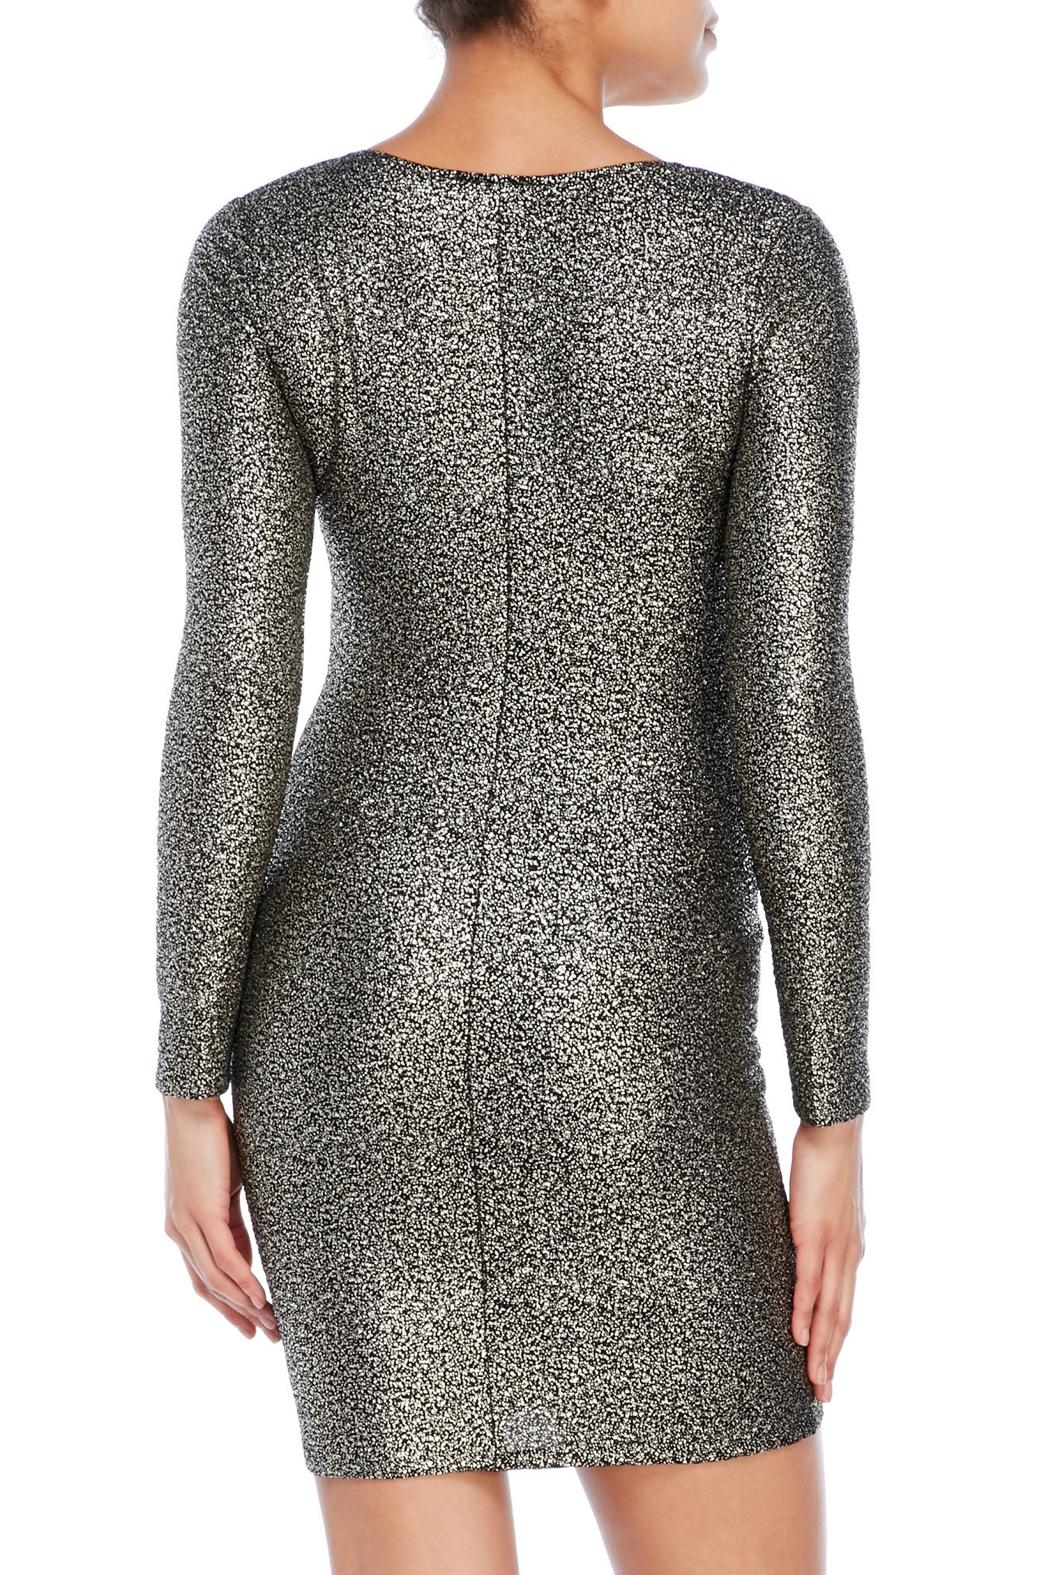 House of Atelier Metallic Bodycon Dress - Side Cropped Image